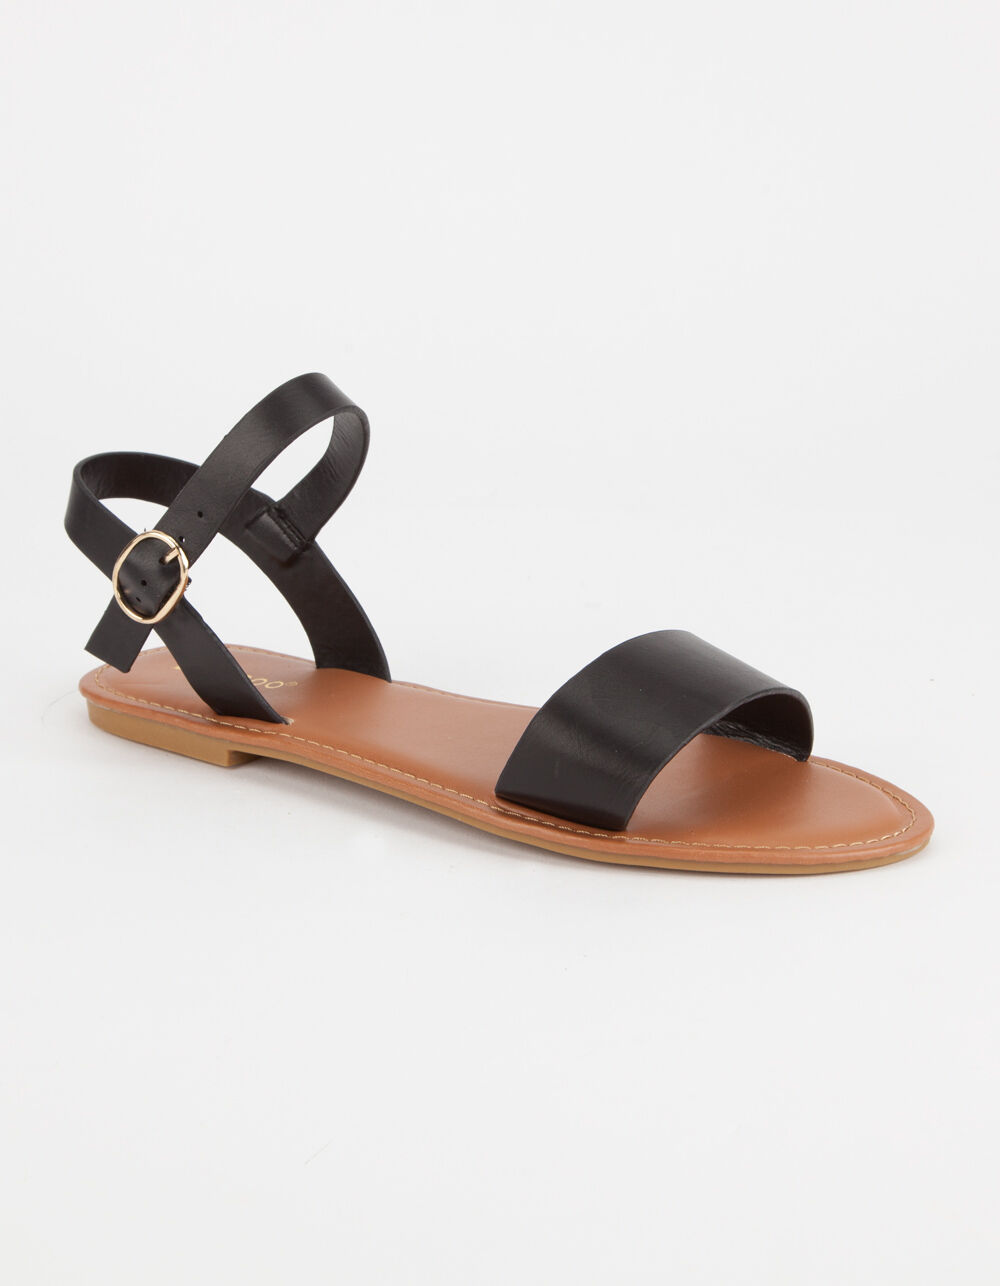 Image of BAMBOO ANKLE STRAP SANDALS